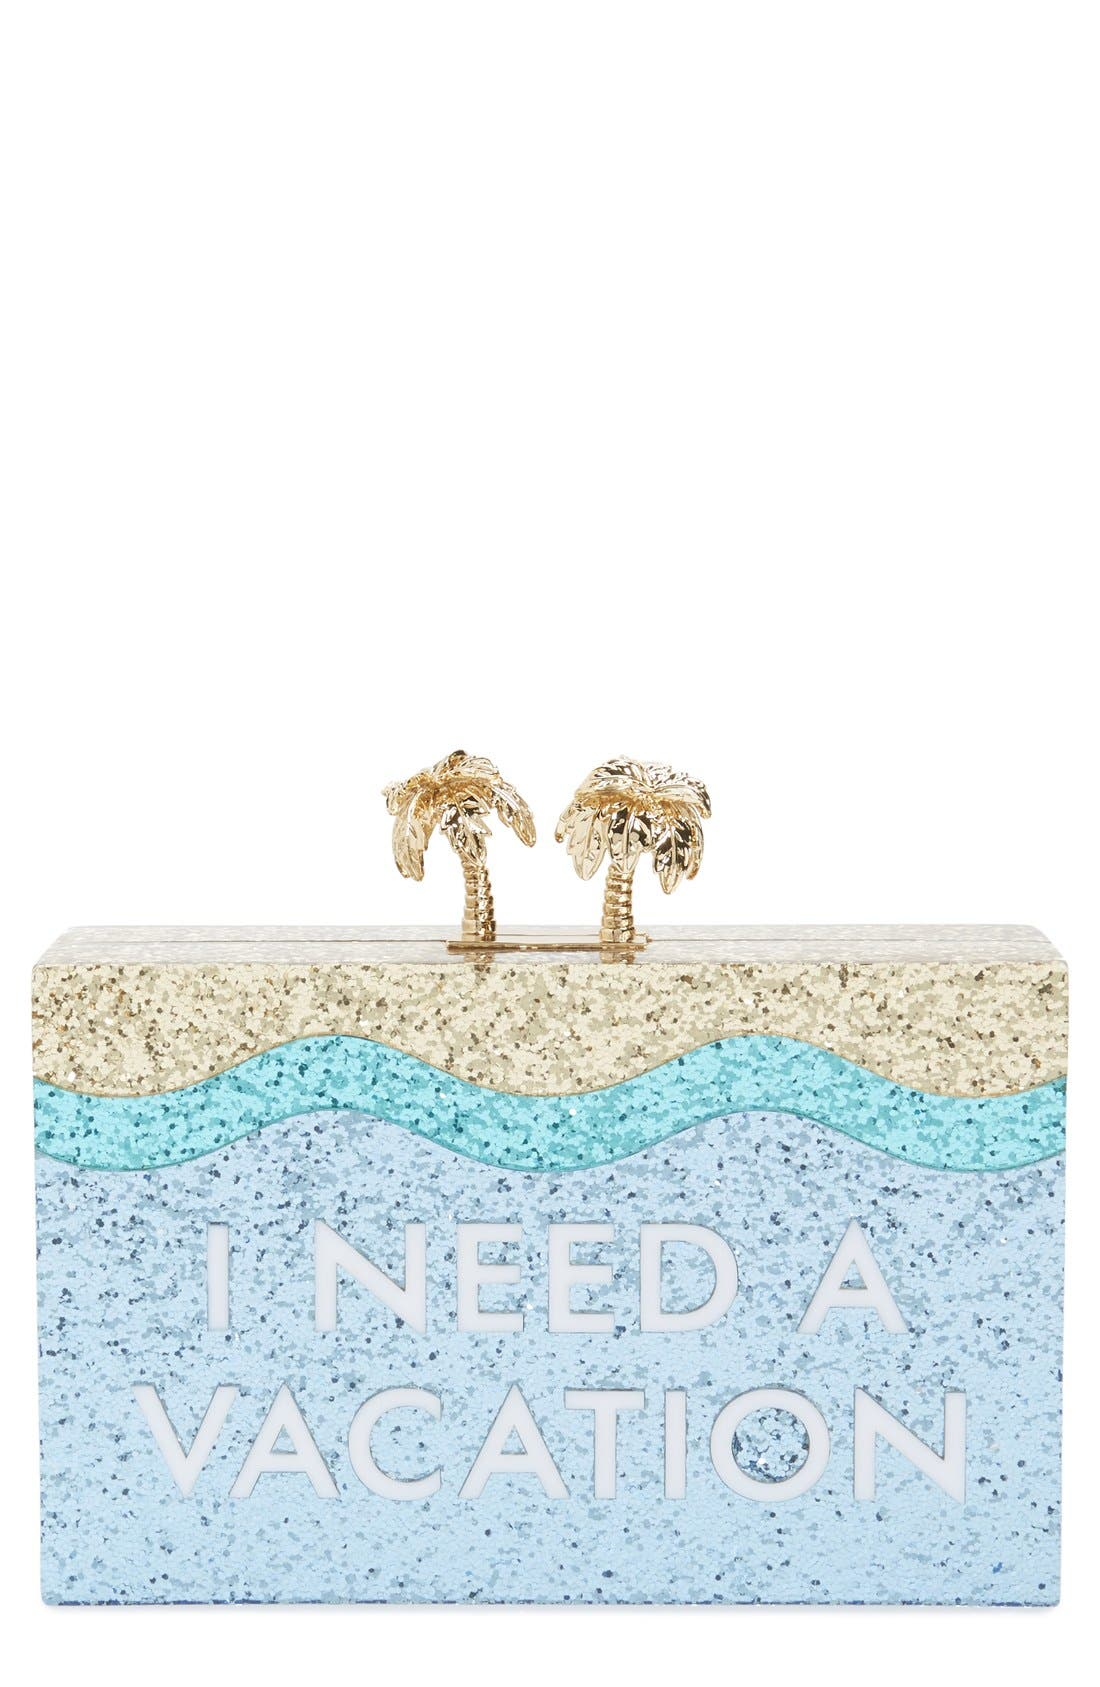 Alternate Image 1 Selected - kate spade new york 'i need a vacation' box clutch